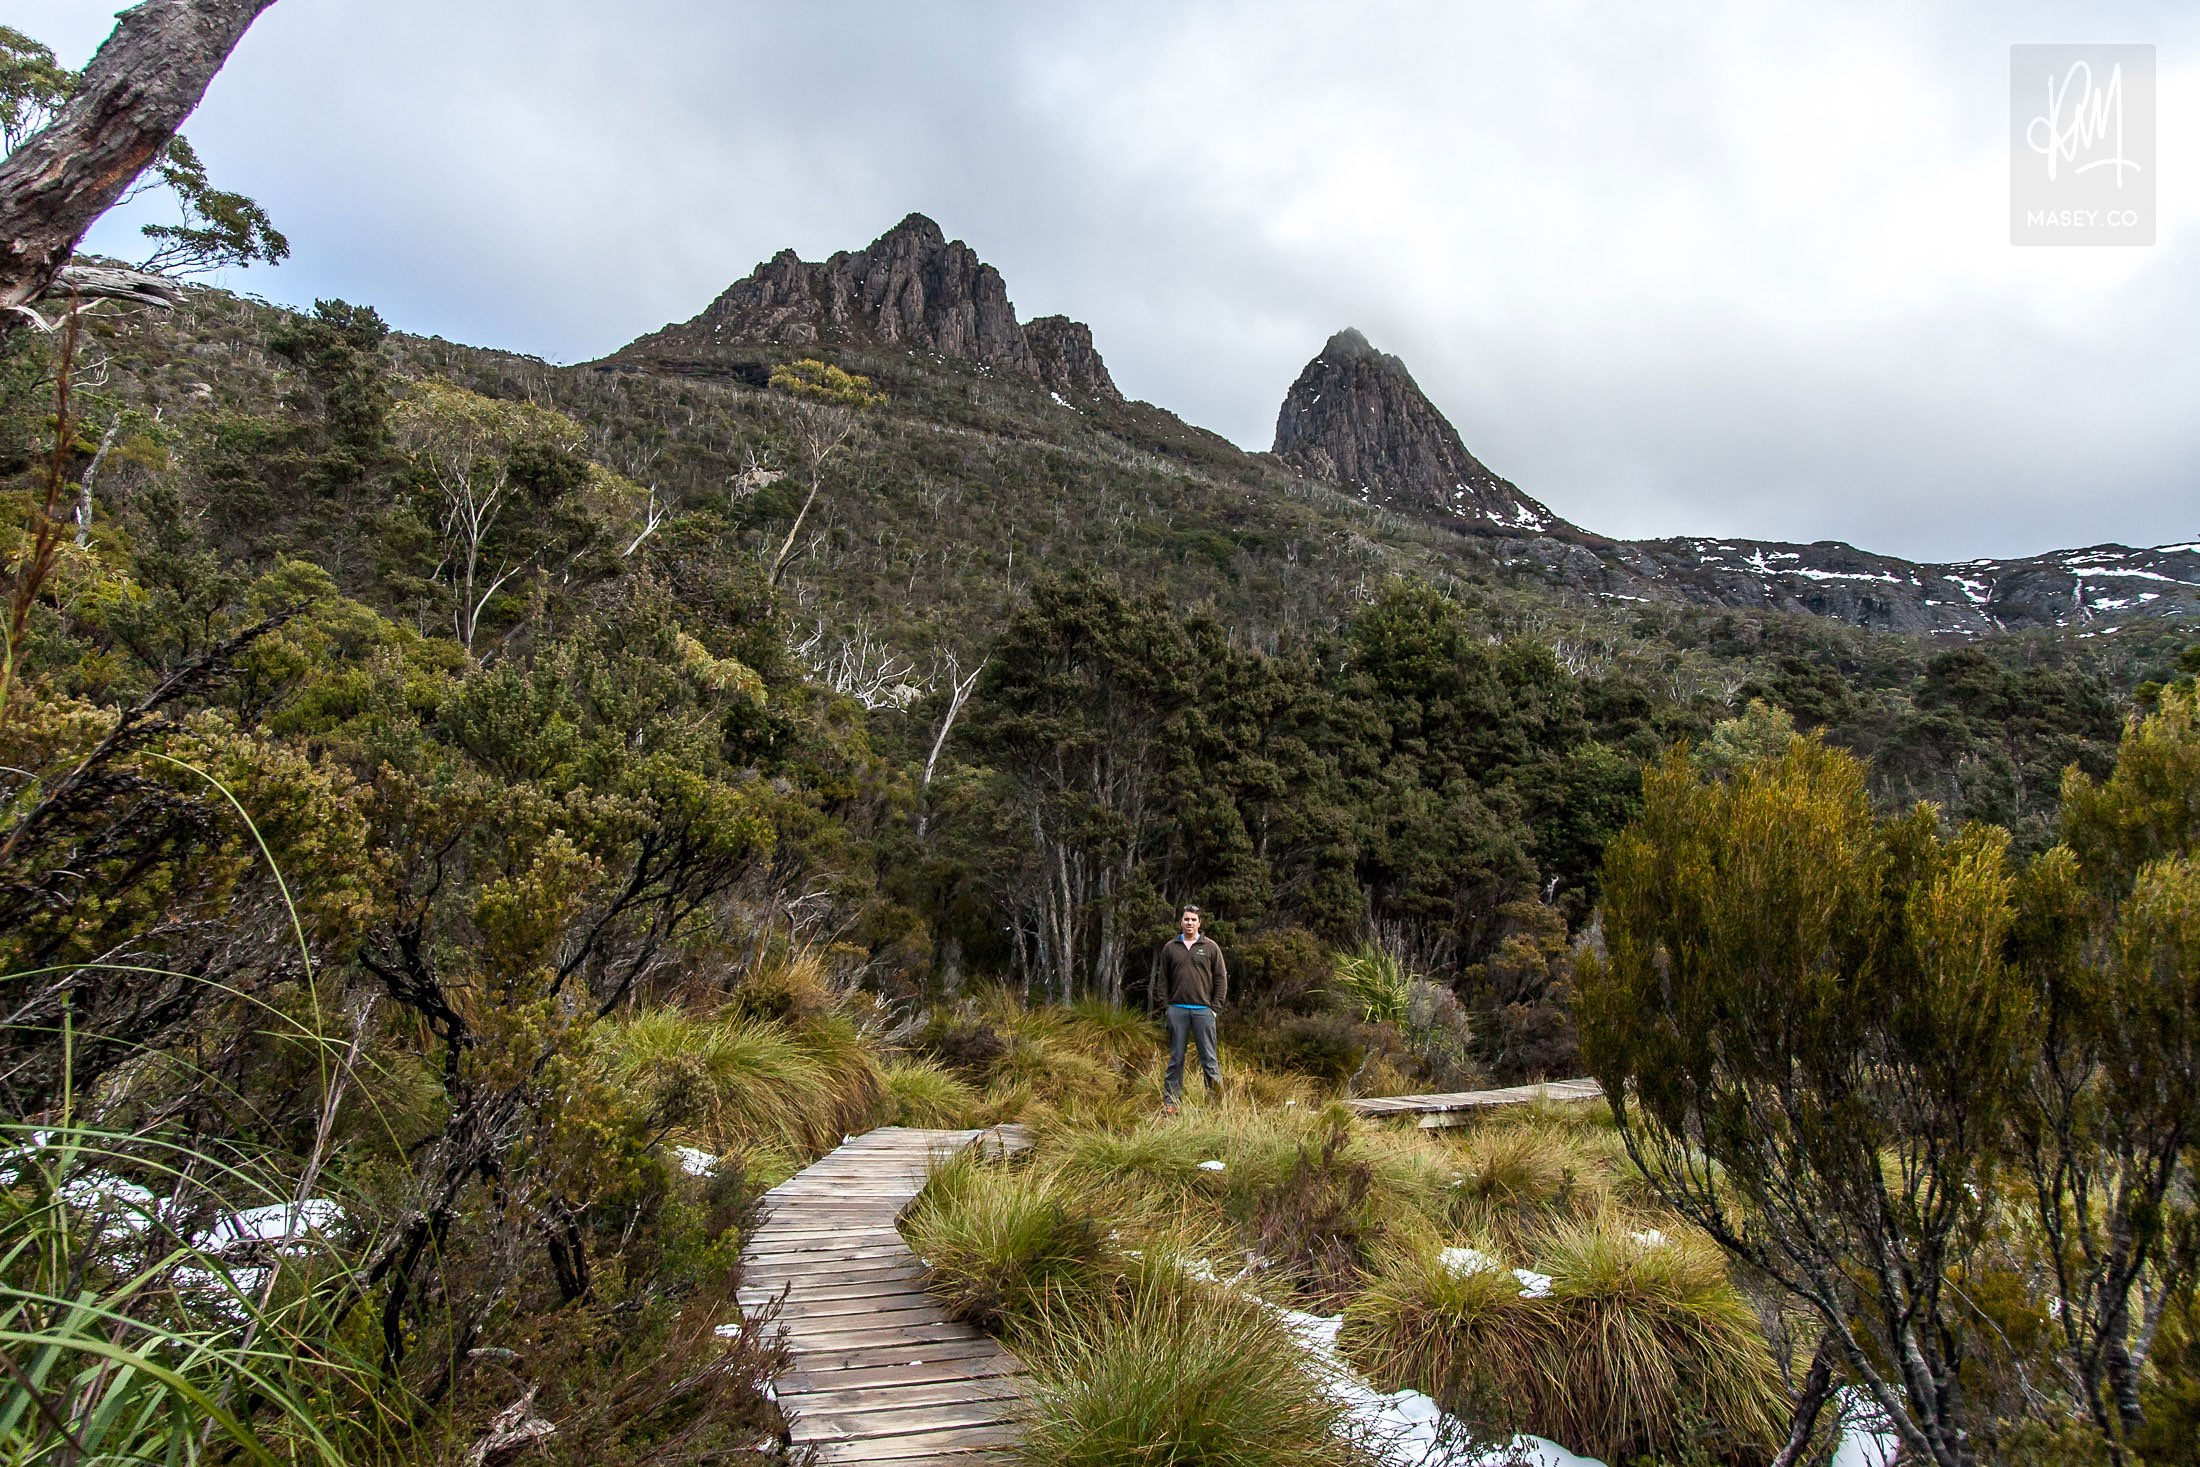 At the foot of Cradle Mountain